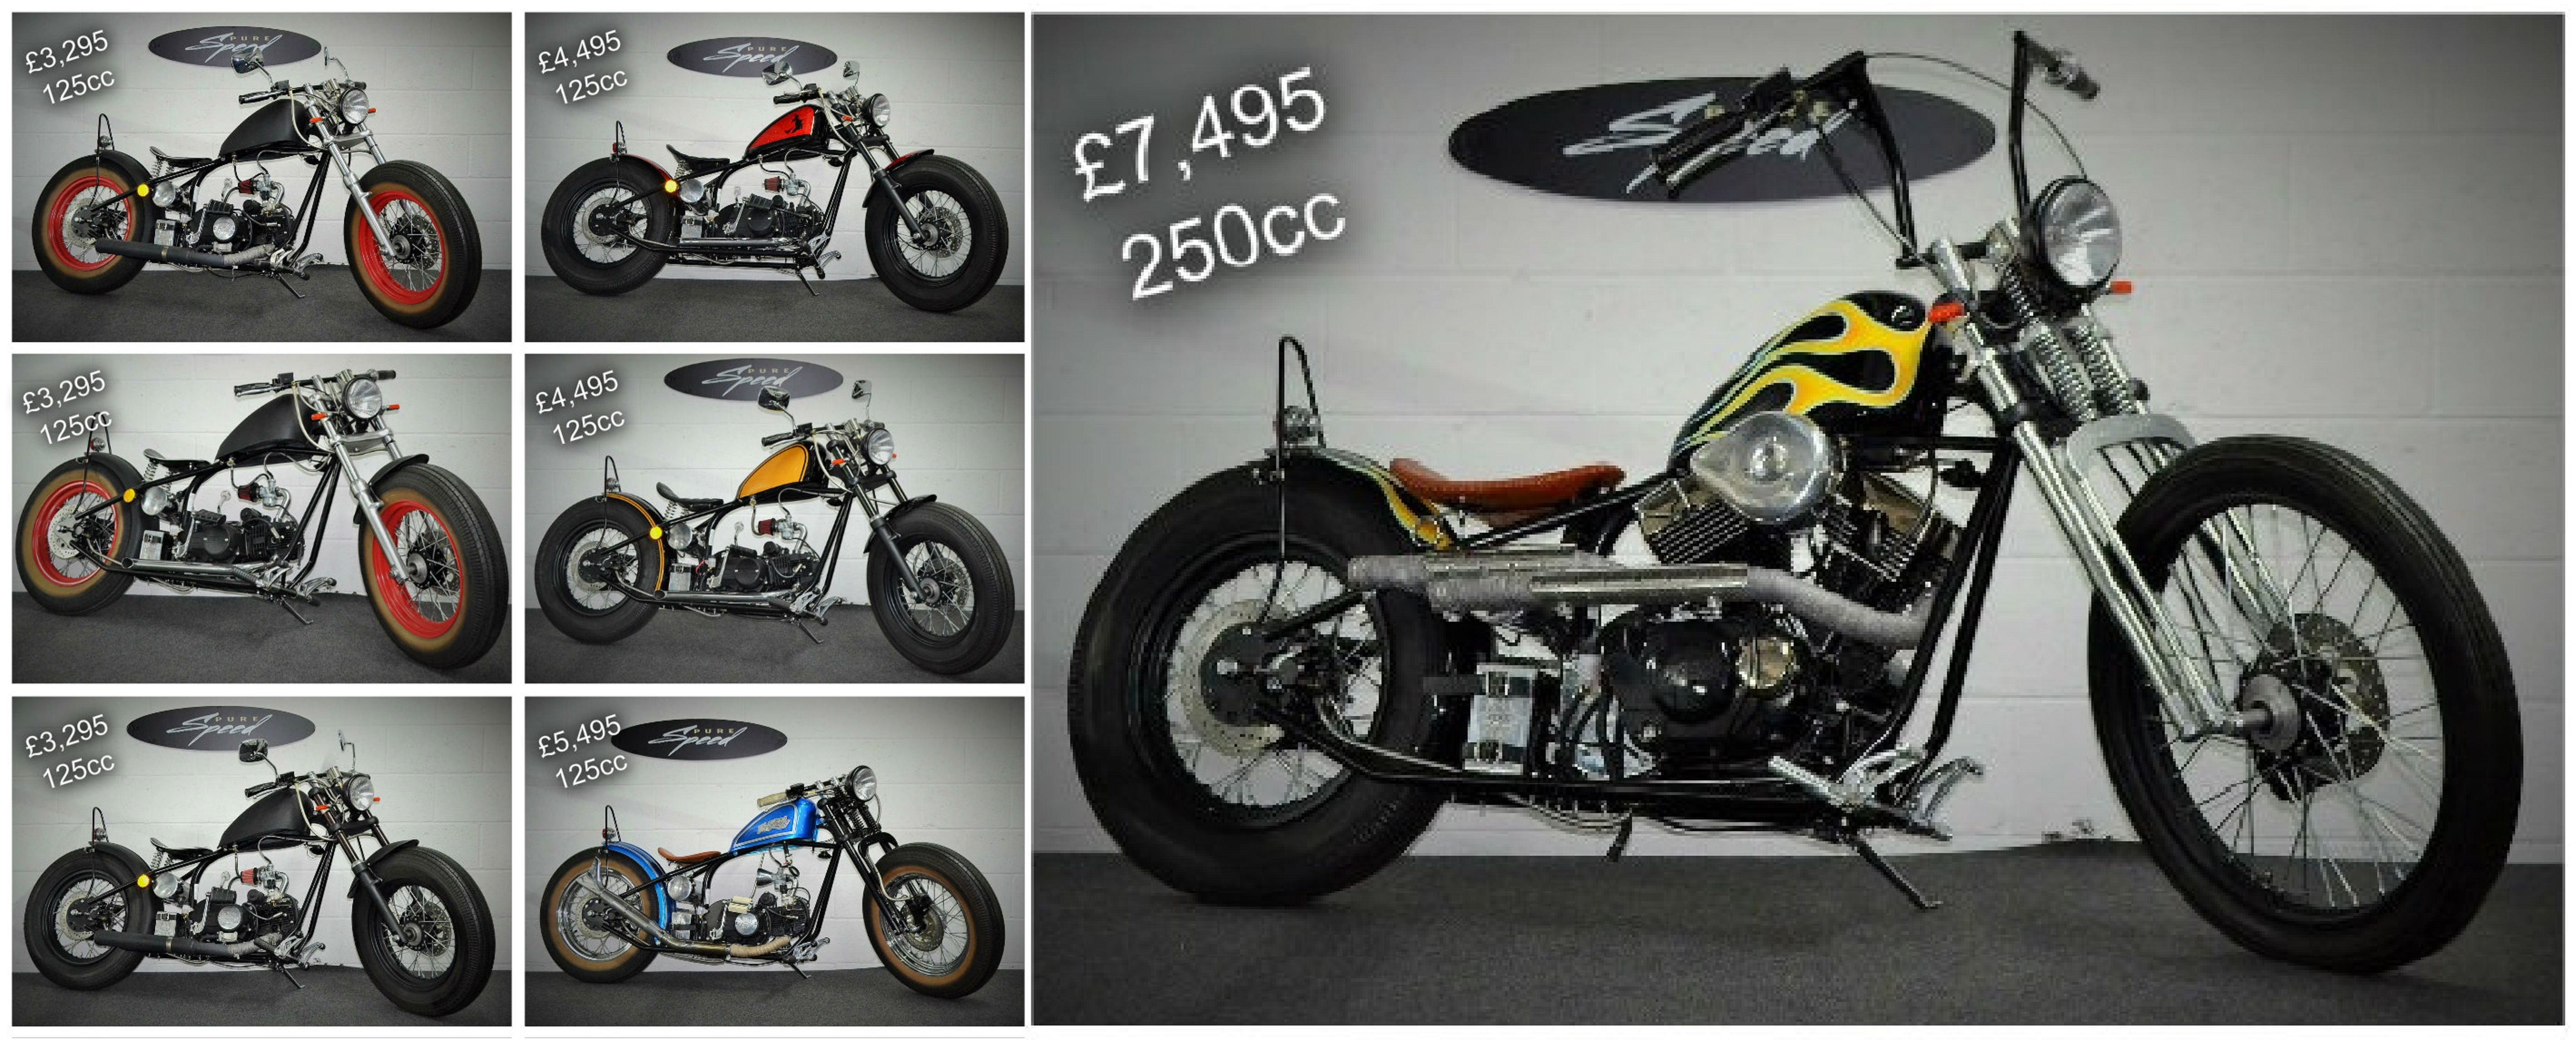 Enchanting Cb550 Bobber Wiring Diagram Adornment - Electrical and ...